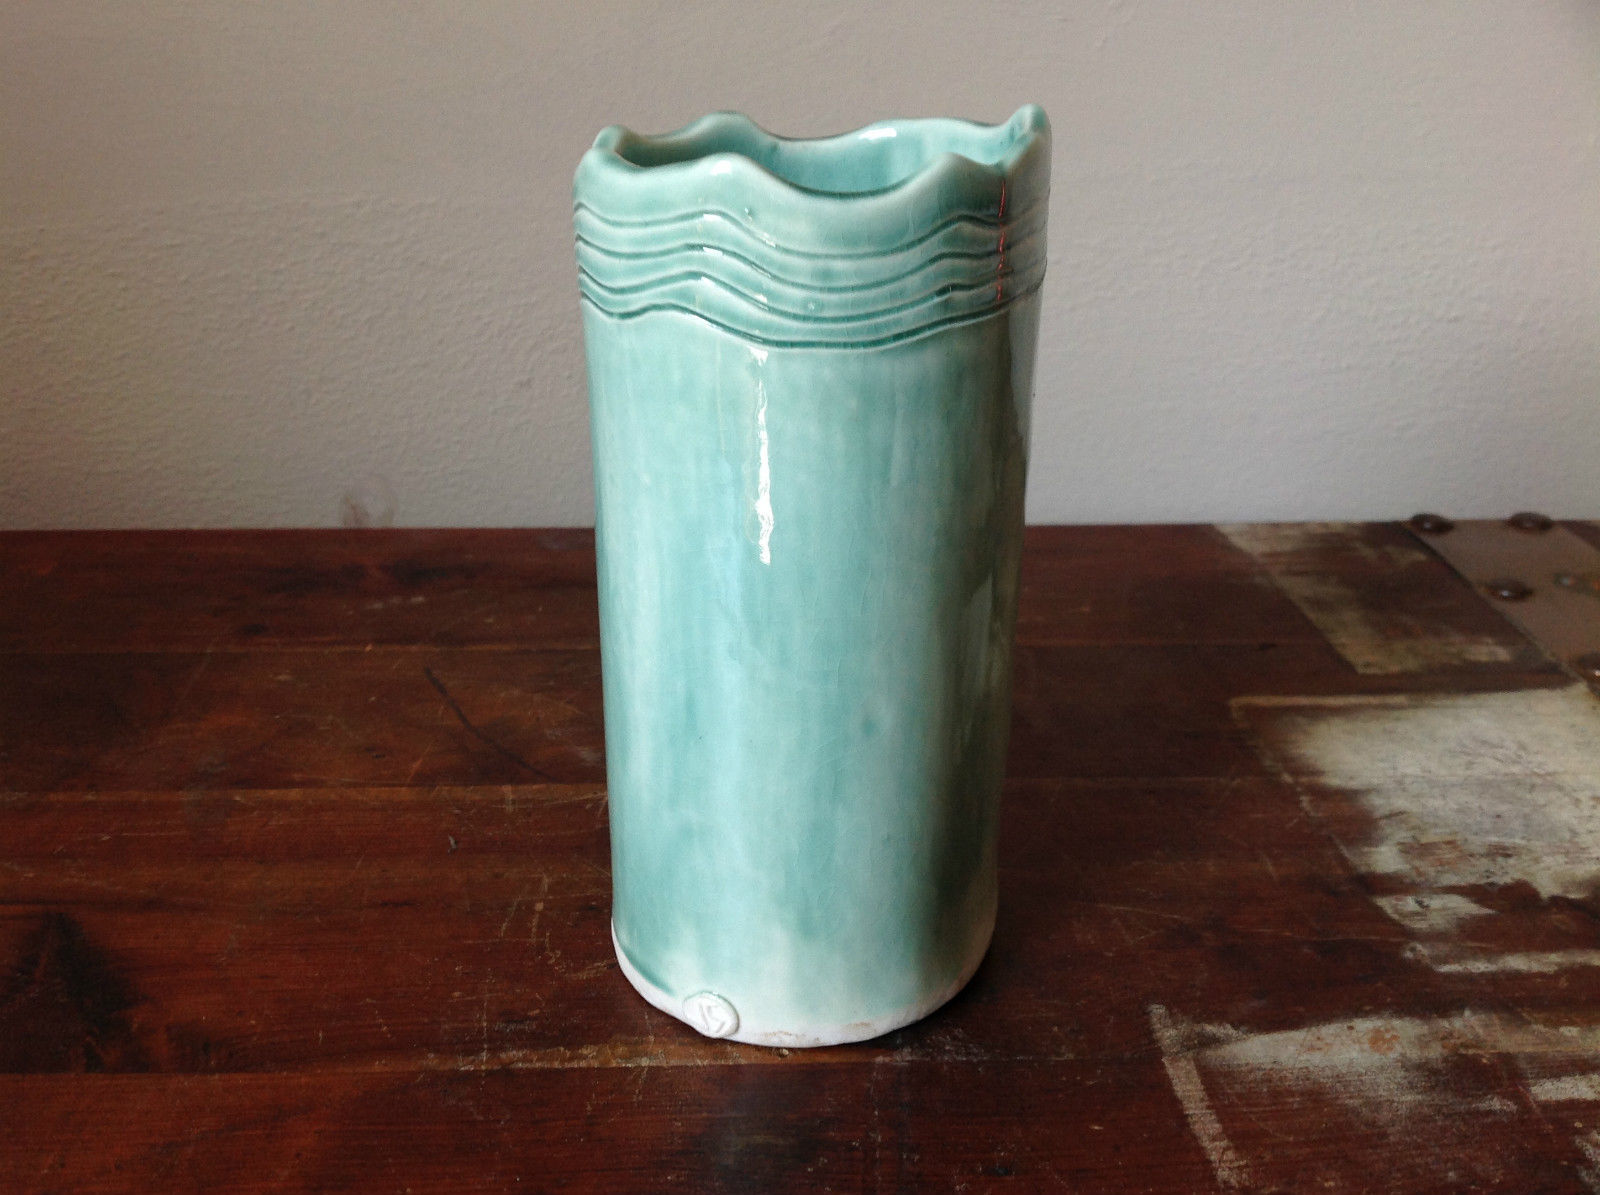 Tall Light Blue Ceramic Cylindrical Open Top Vessel Vase Hand Crafted Artisan